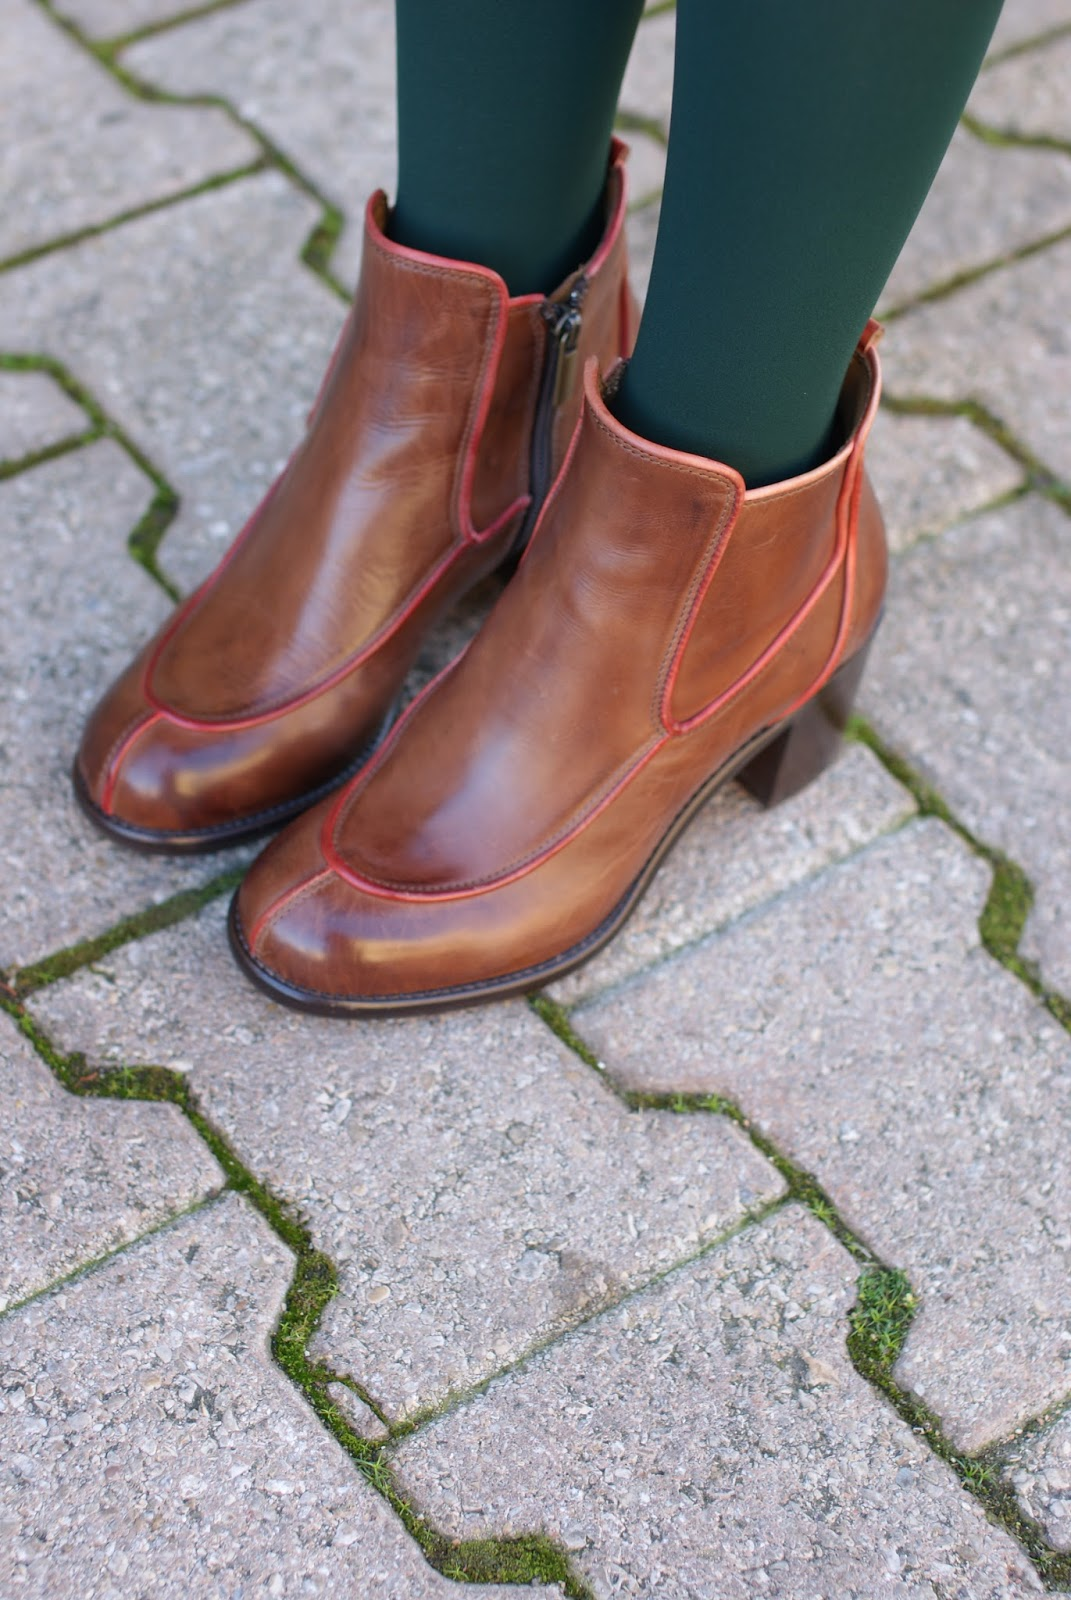 Calzaturificio Tentazione ankle boots on Fashion and Cookies fashion blog